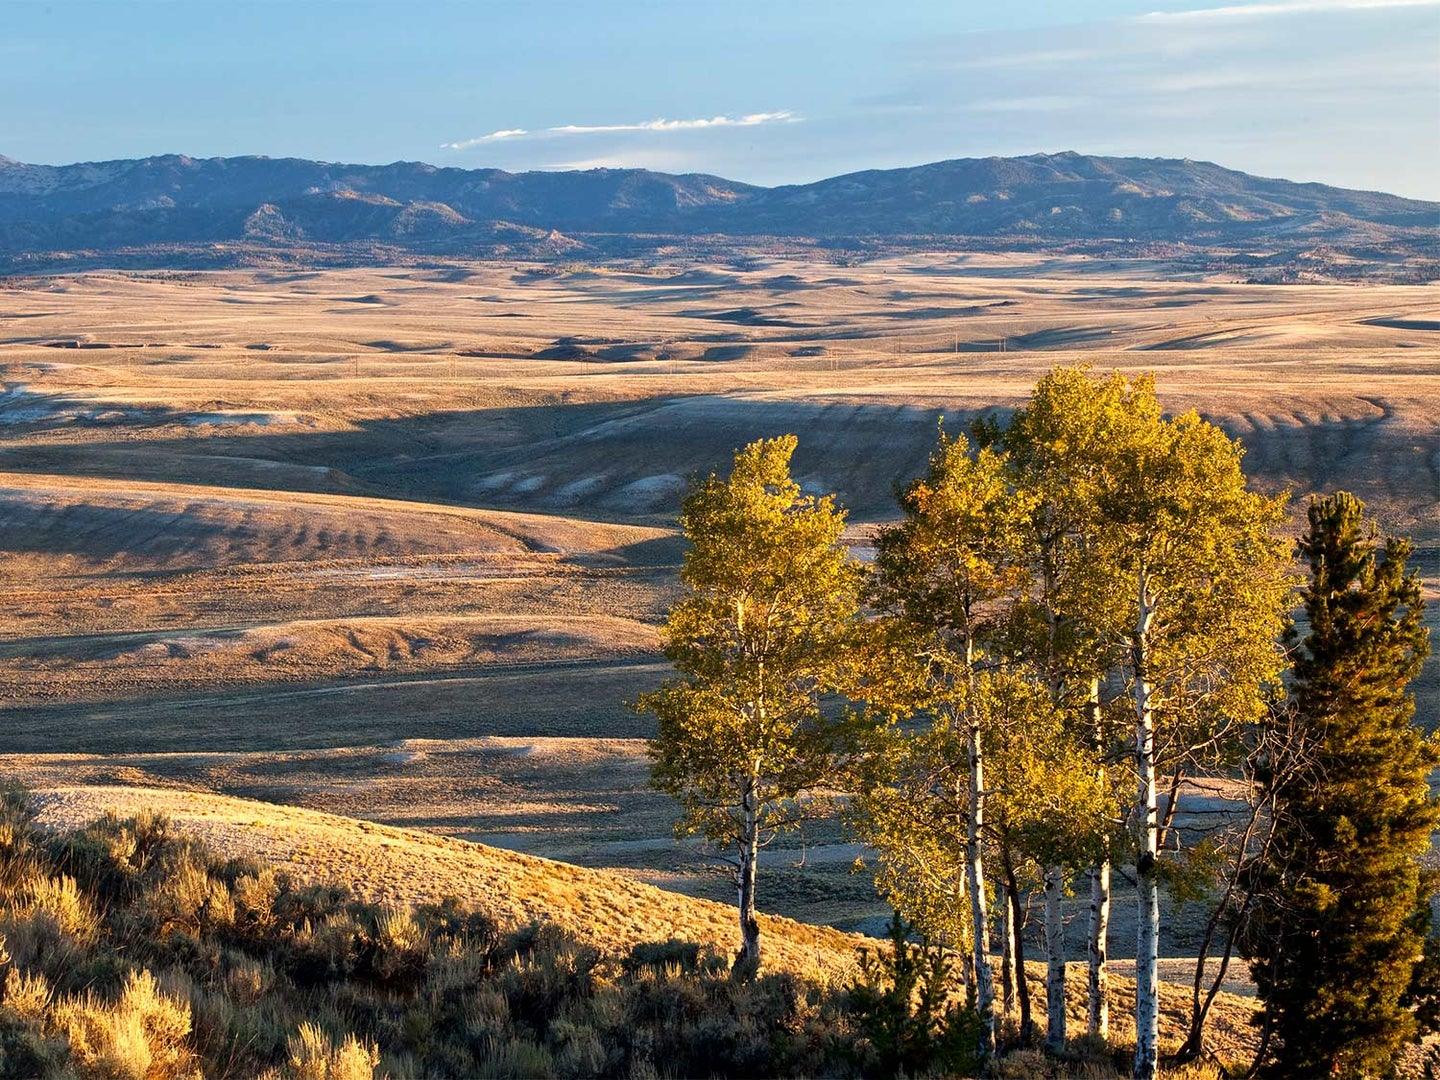 Anti-Public-Lands Advocate Now in Charge of 250 Million Acres of BLM Land